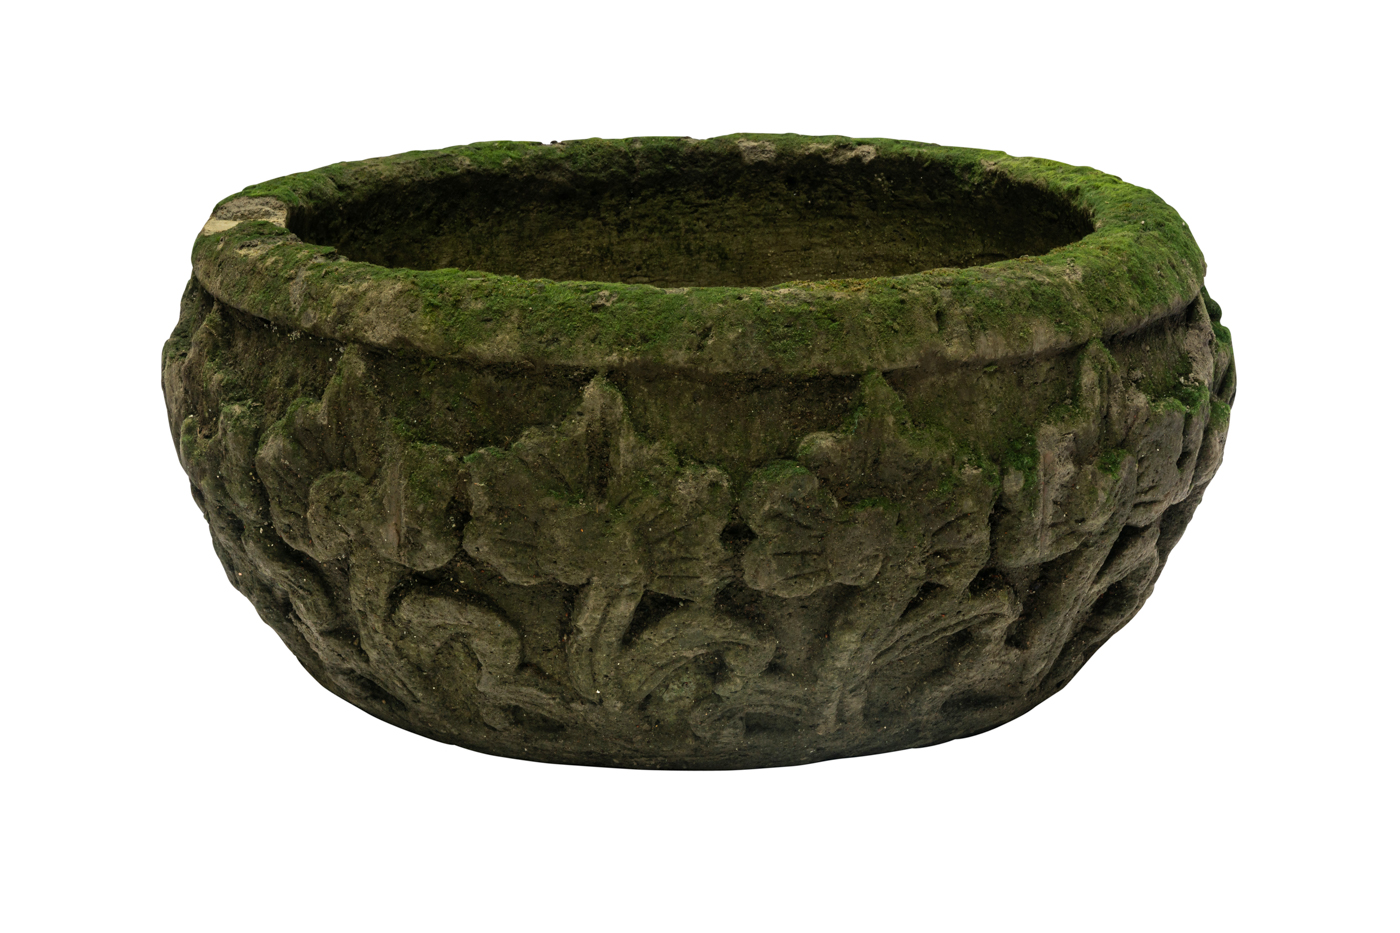 Carved  stone pot with natural green roses design